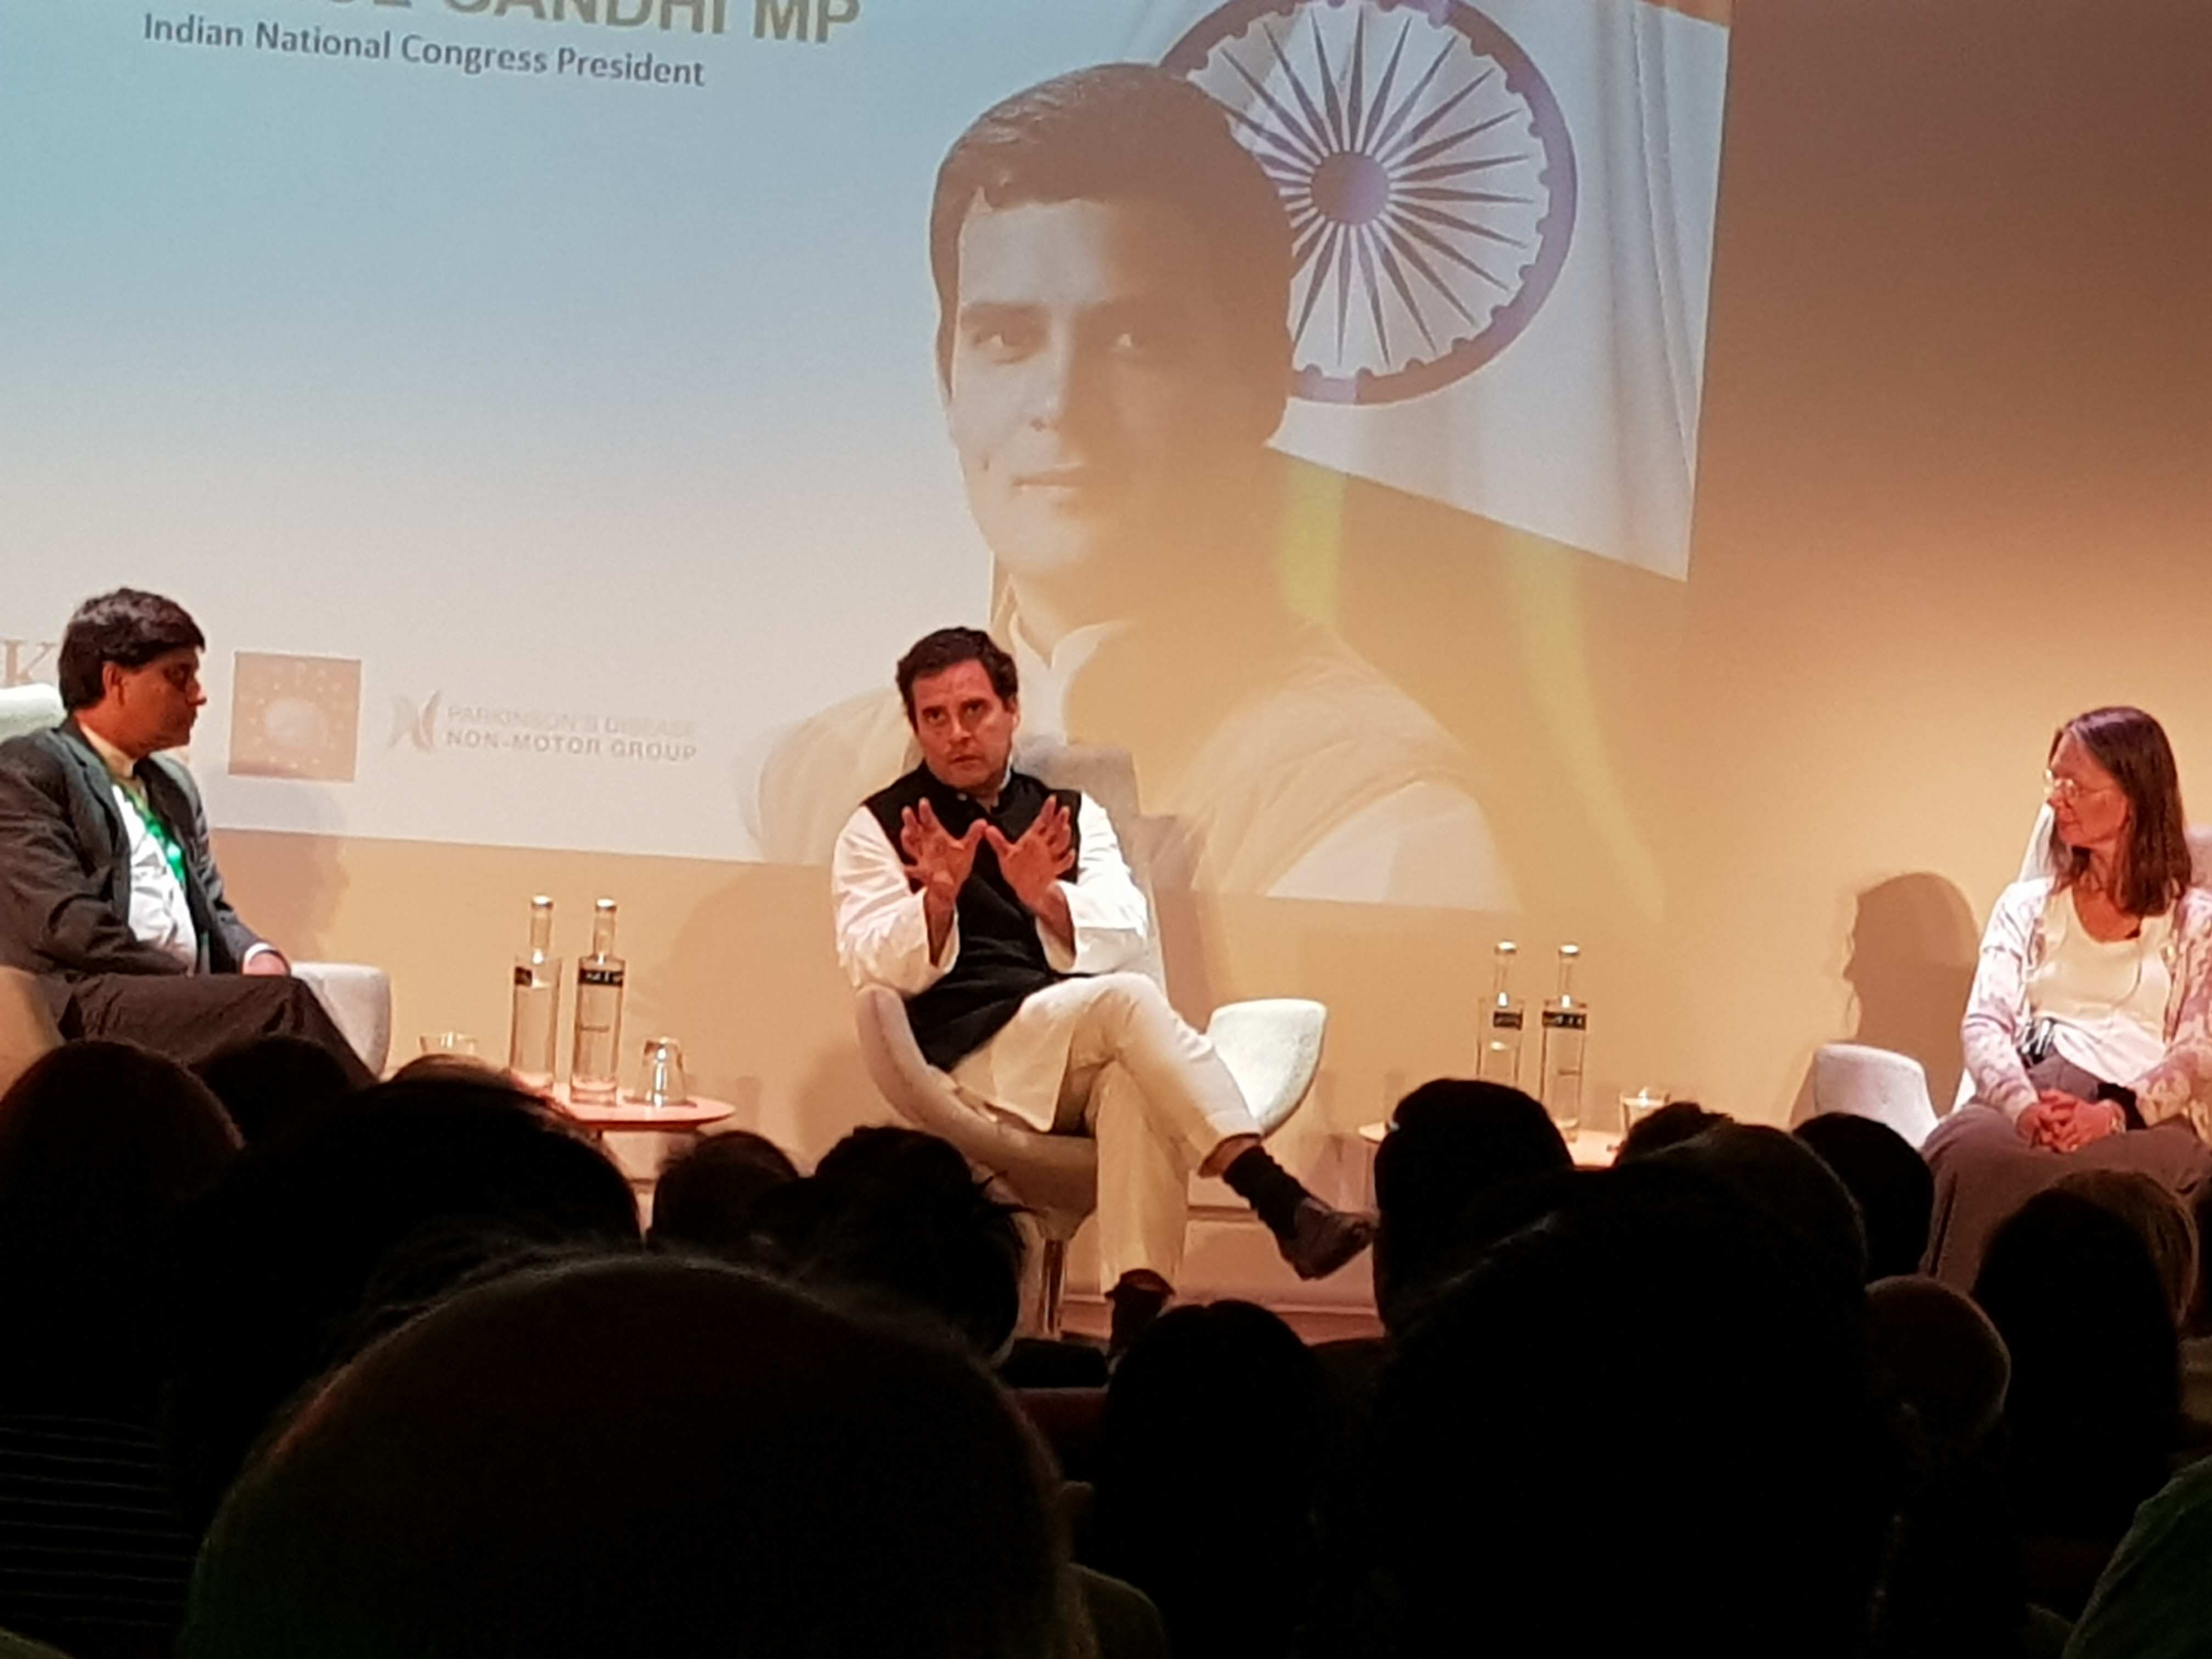 Rahul Gandhi blames concentration of power for poor healthcare in India